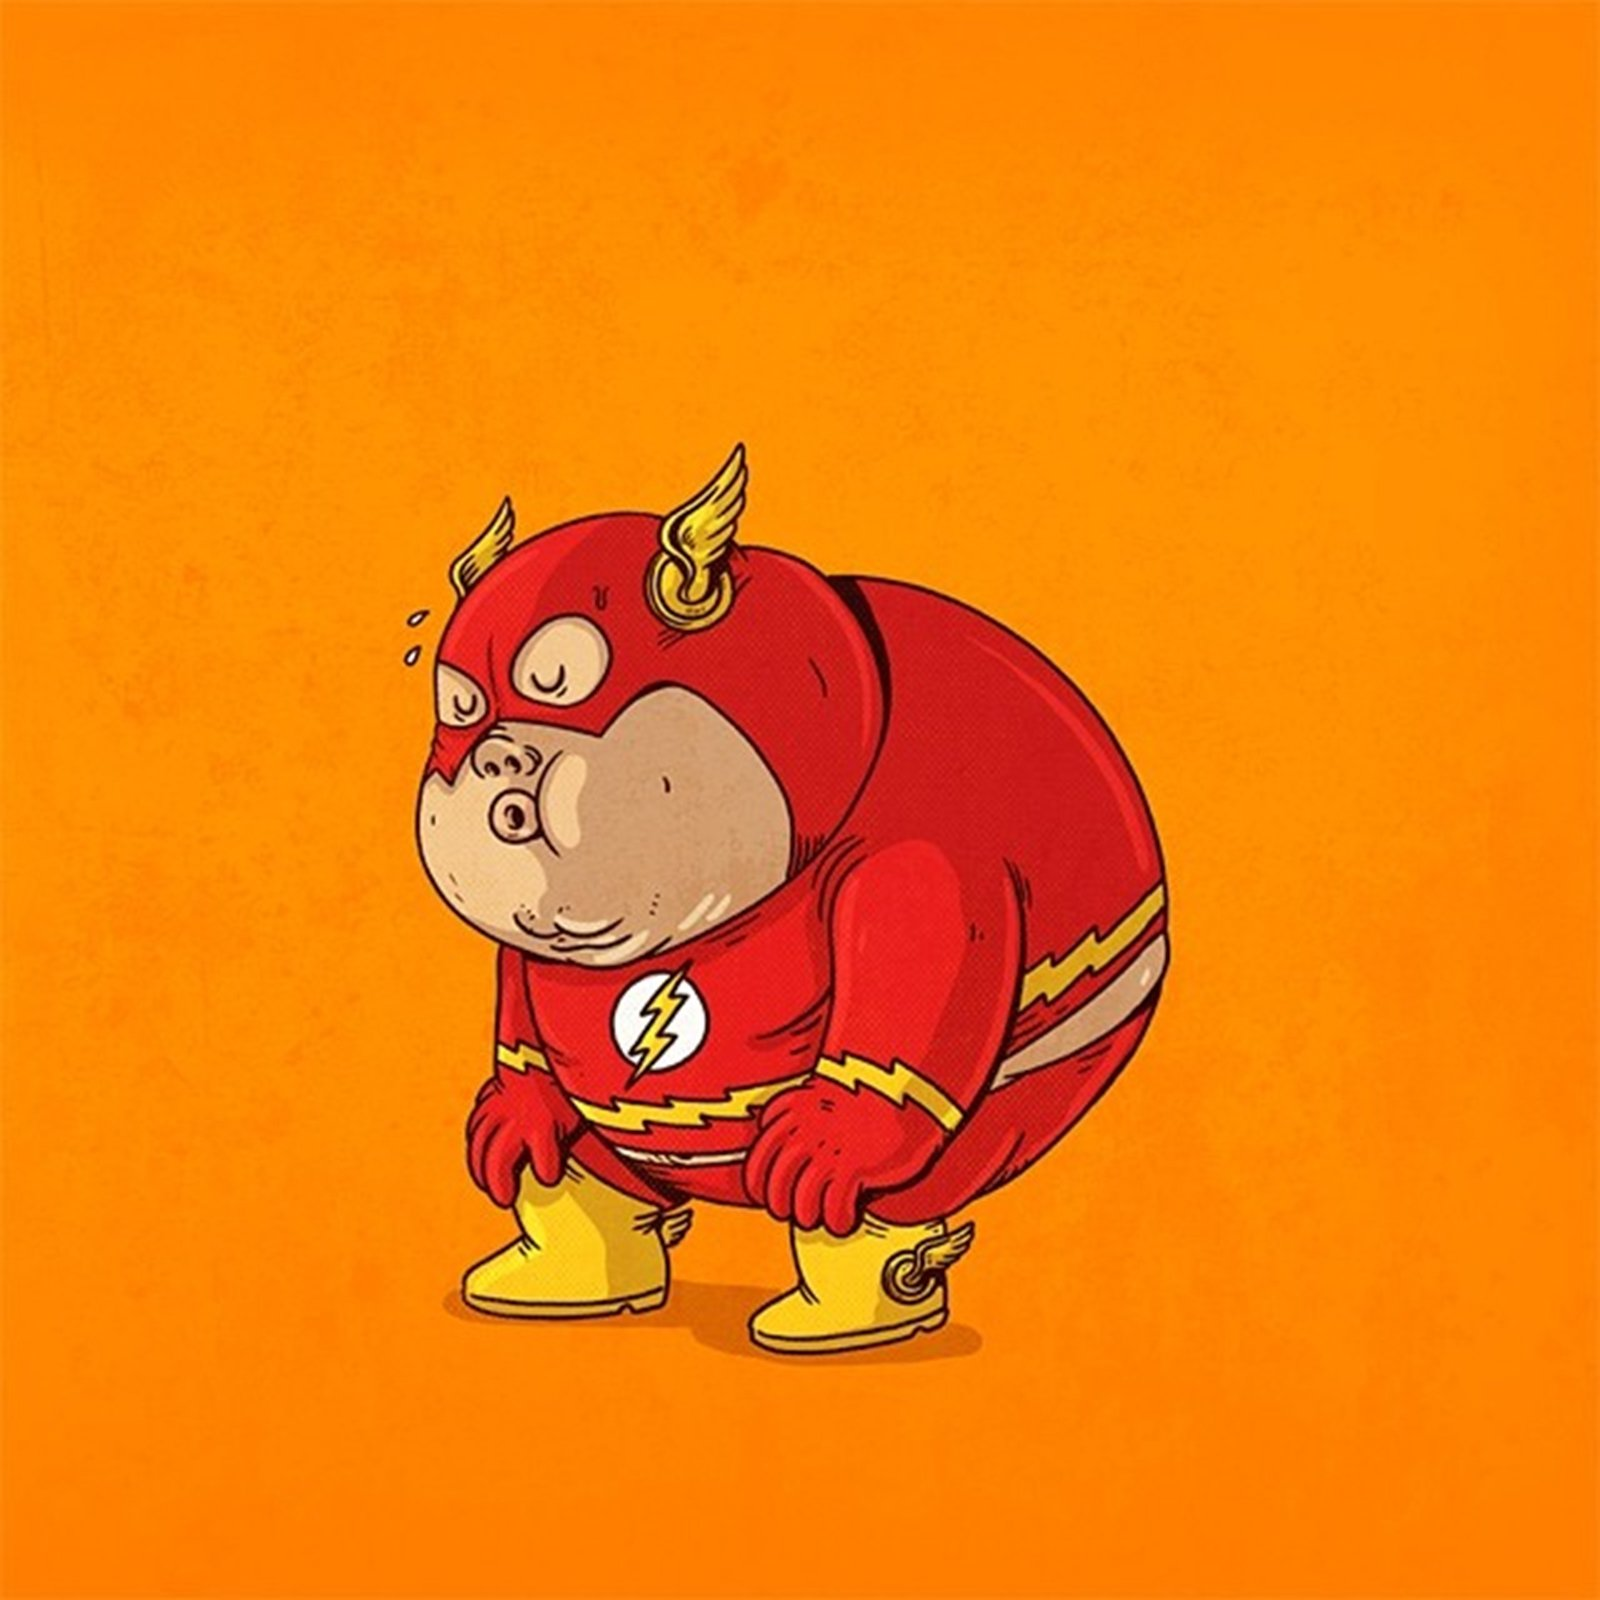 Flash fat superhero dc comics comics cartoon wallpaper 1600x1600 1600x1600